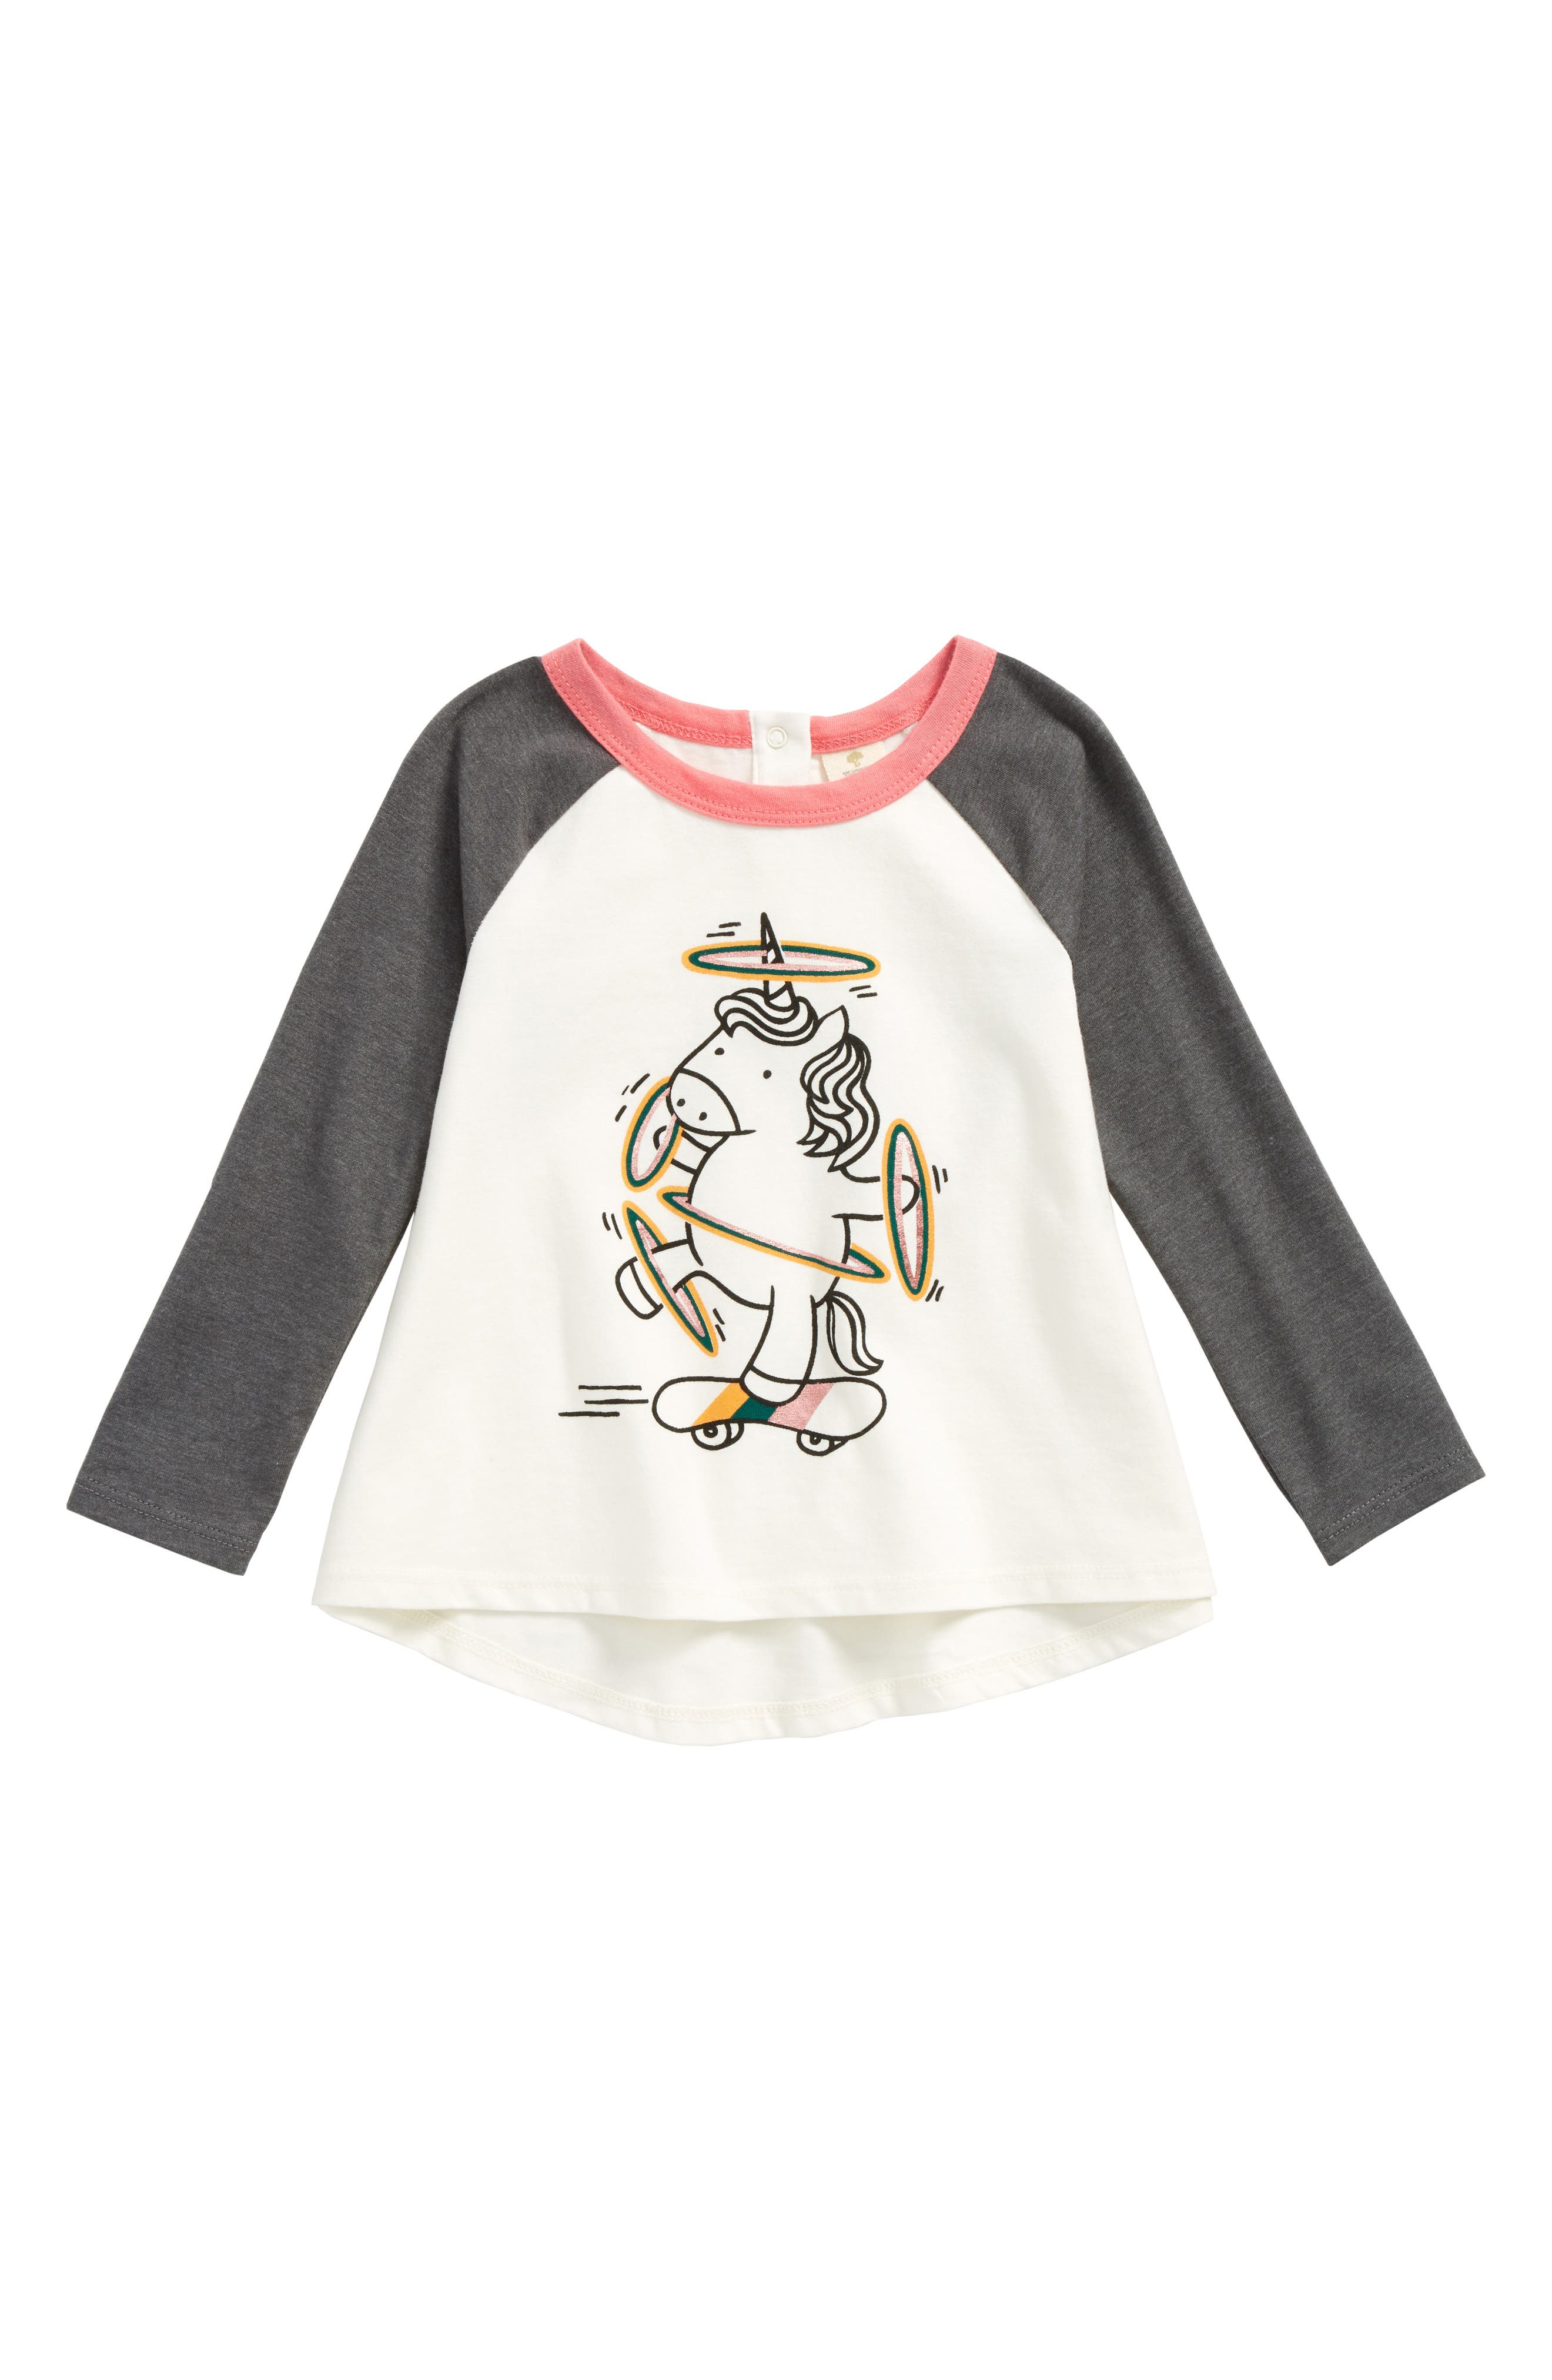 Main Image - Tucker + Tate Graphic Raglan Tee (Baby Girls)